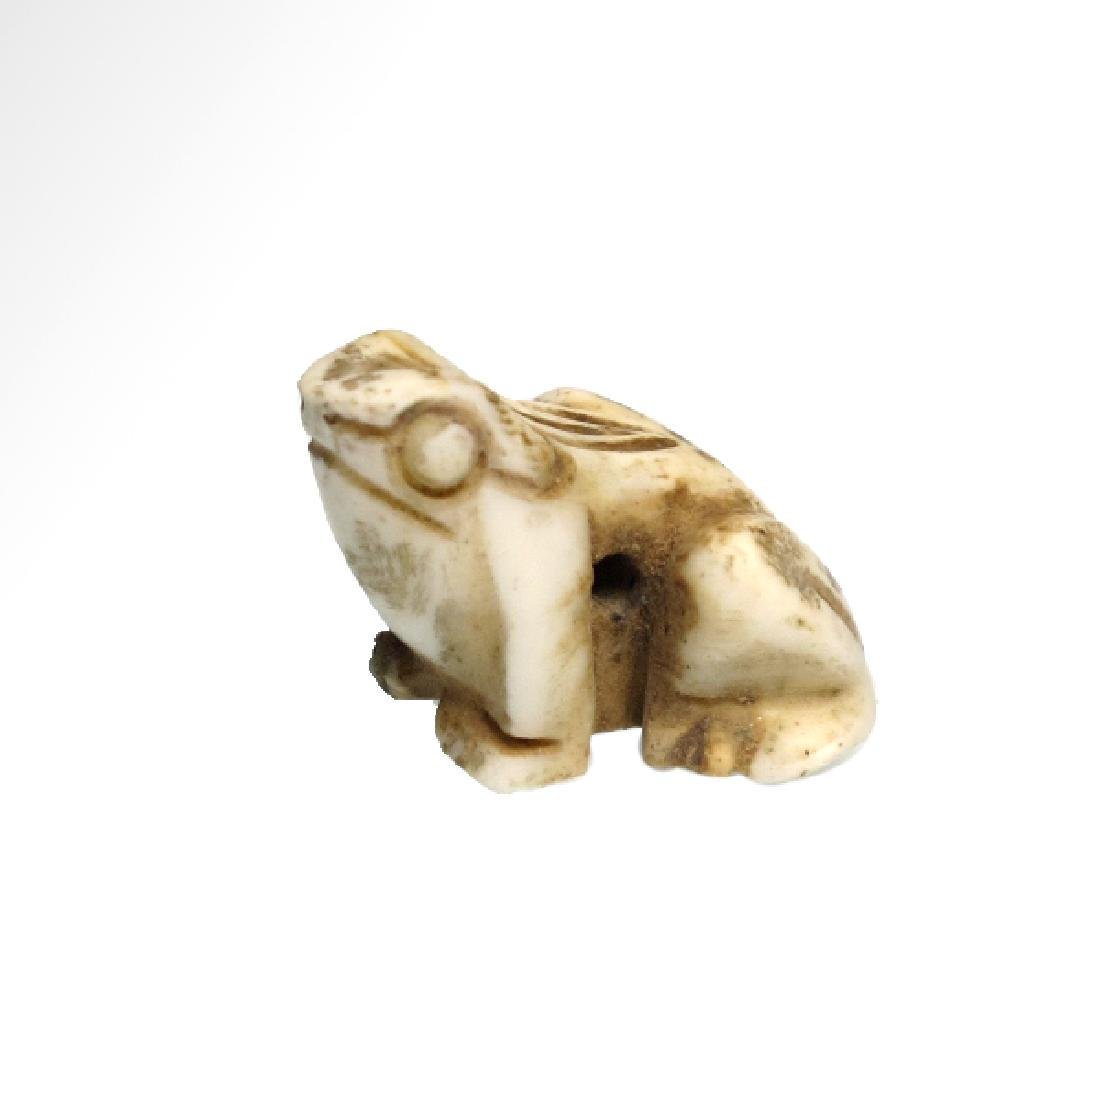 Egyptian White Steatite Frog Amulet 3rd Period 1000 BC